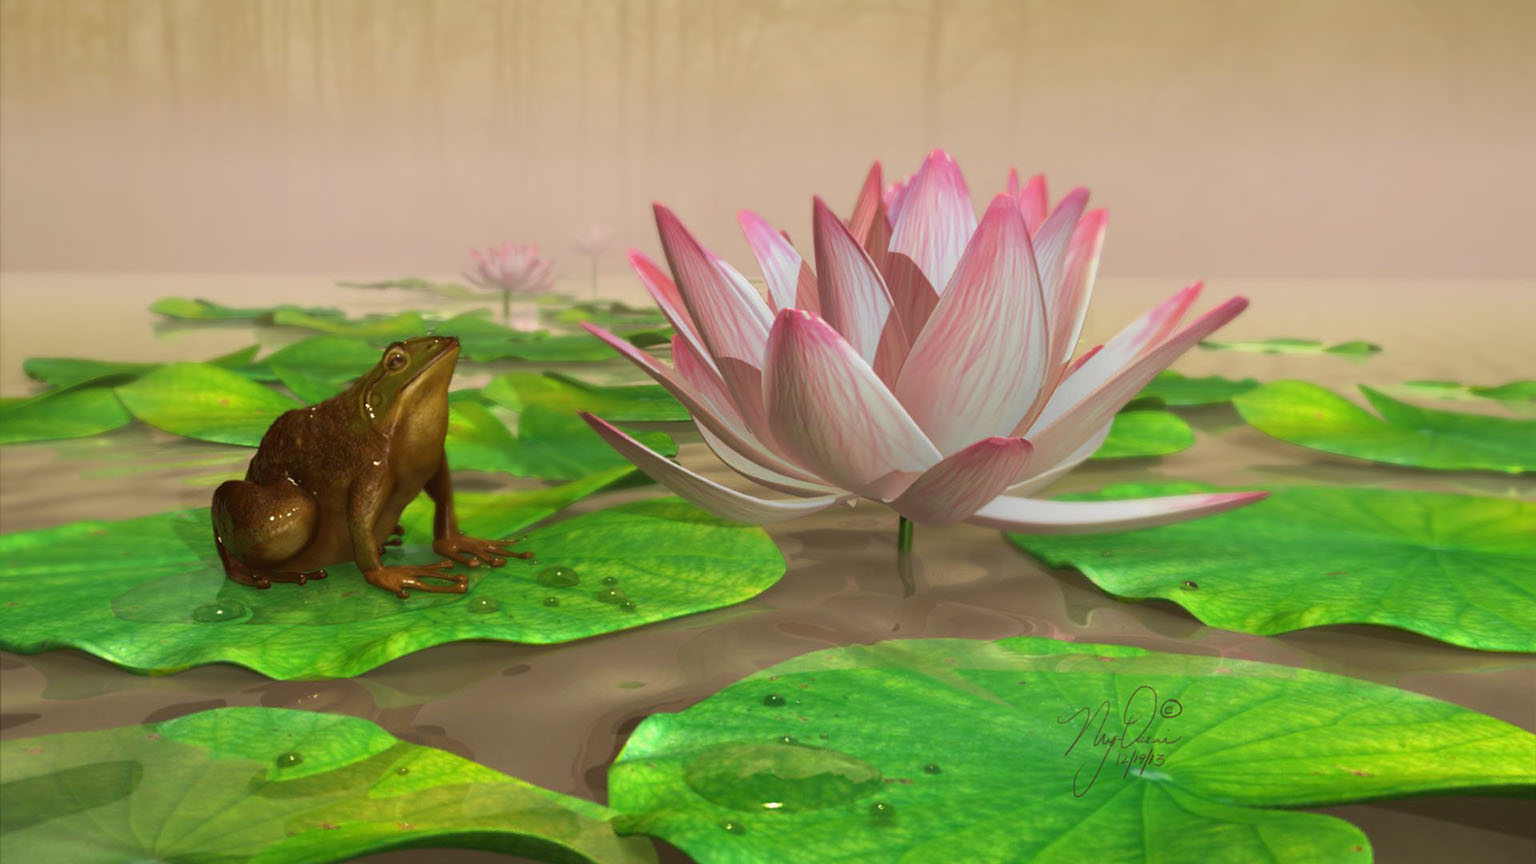 Frog and Lotus in a pond